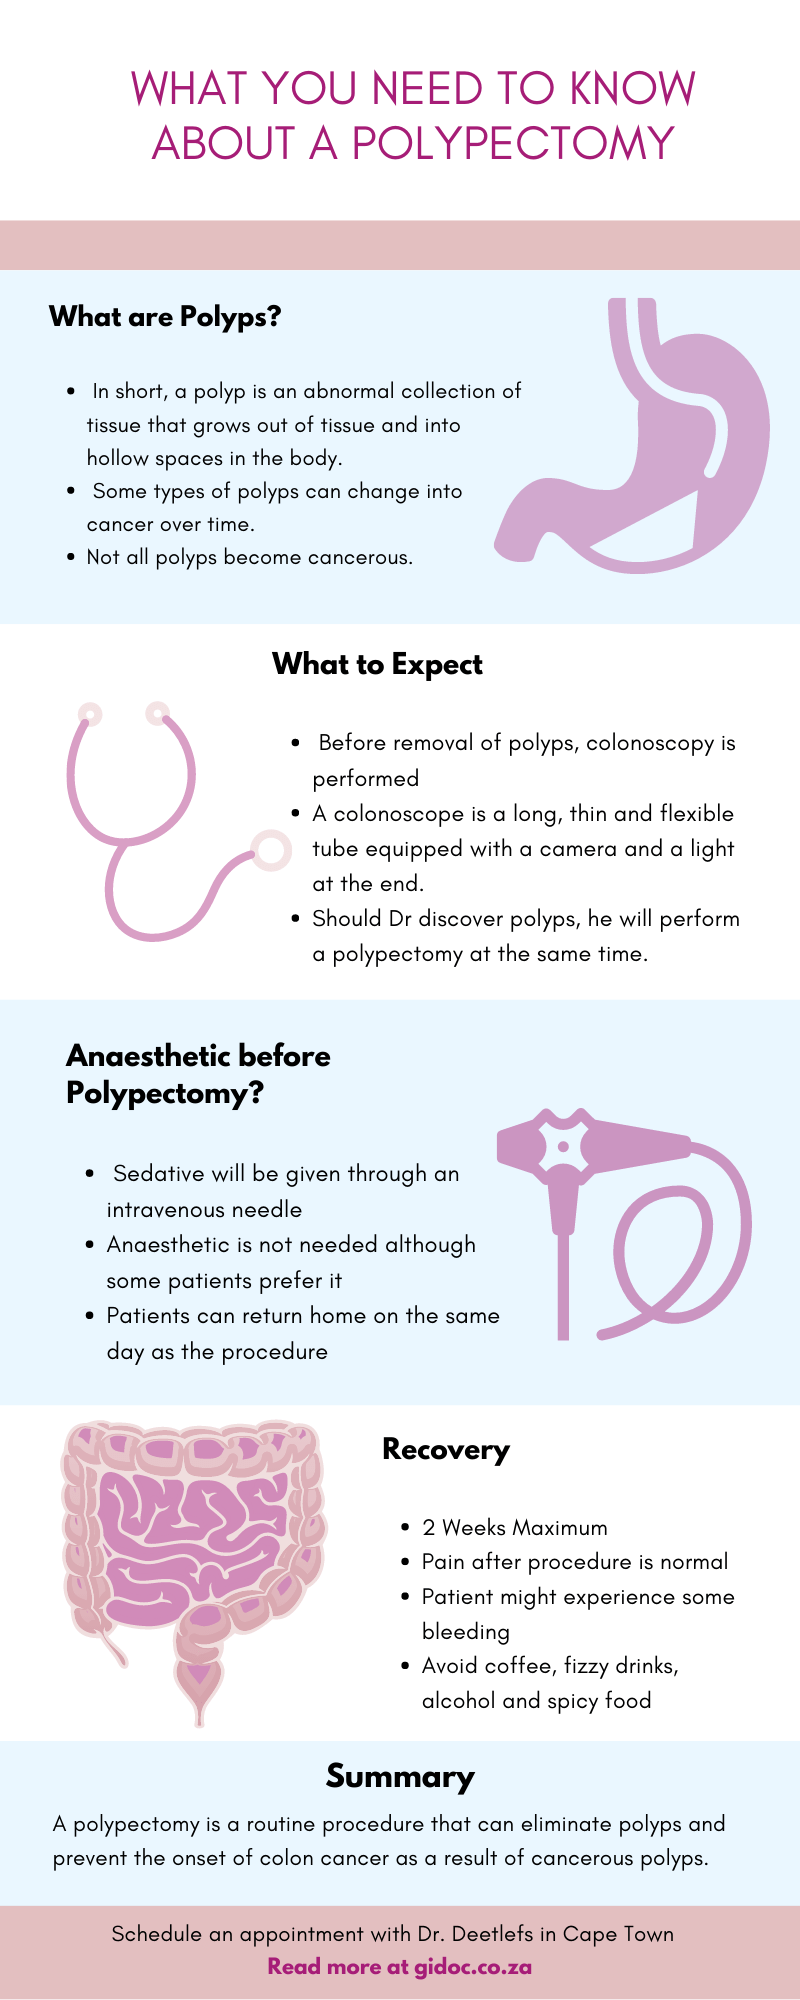 What is a Polypectomy